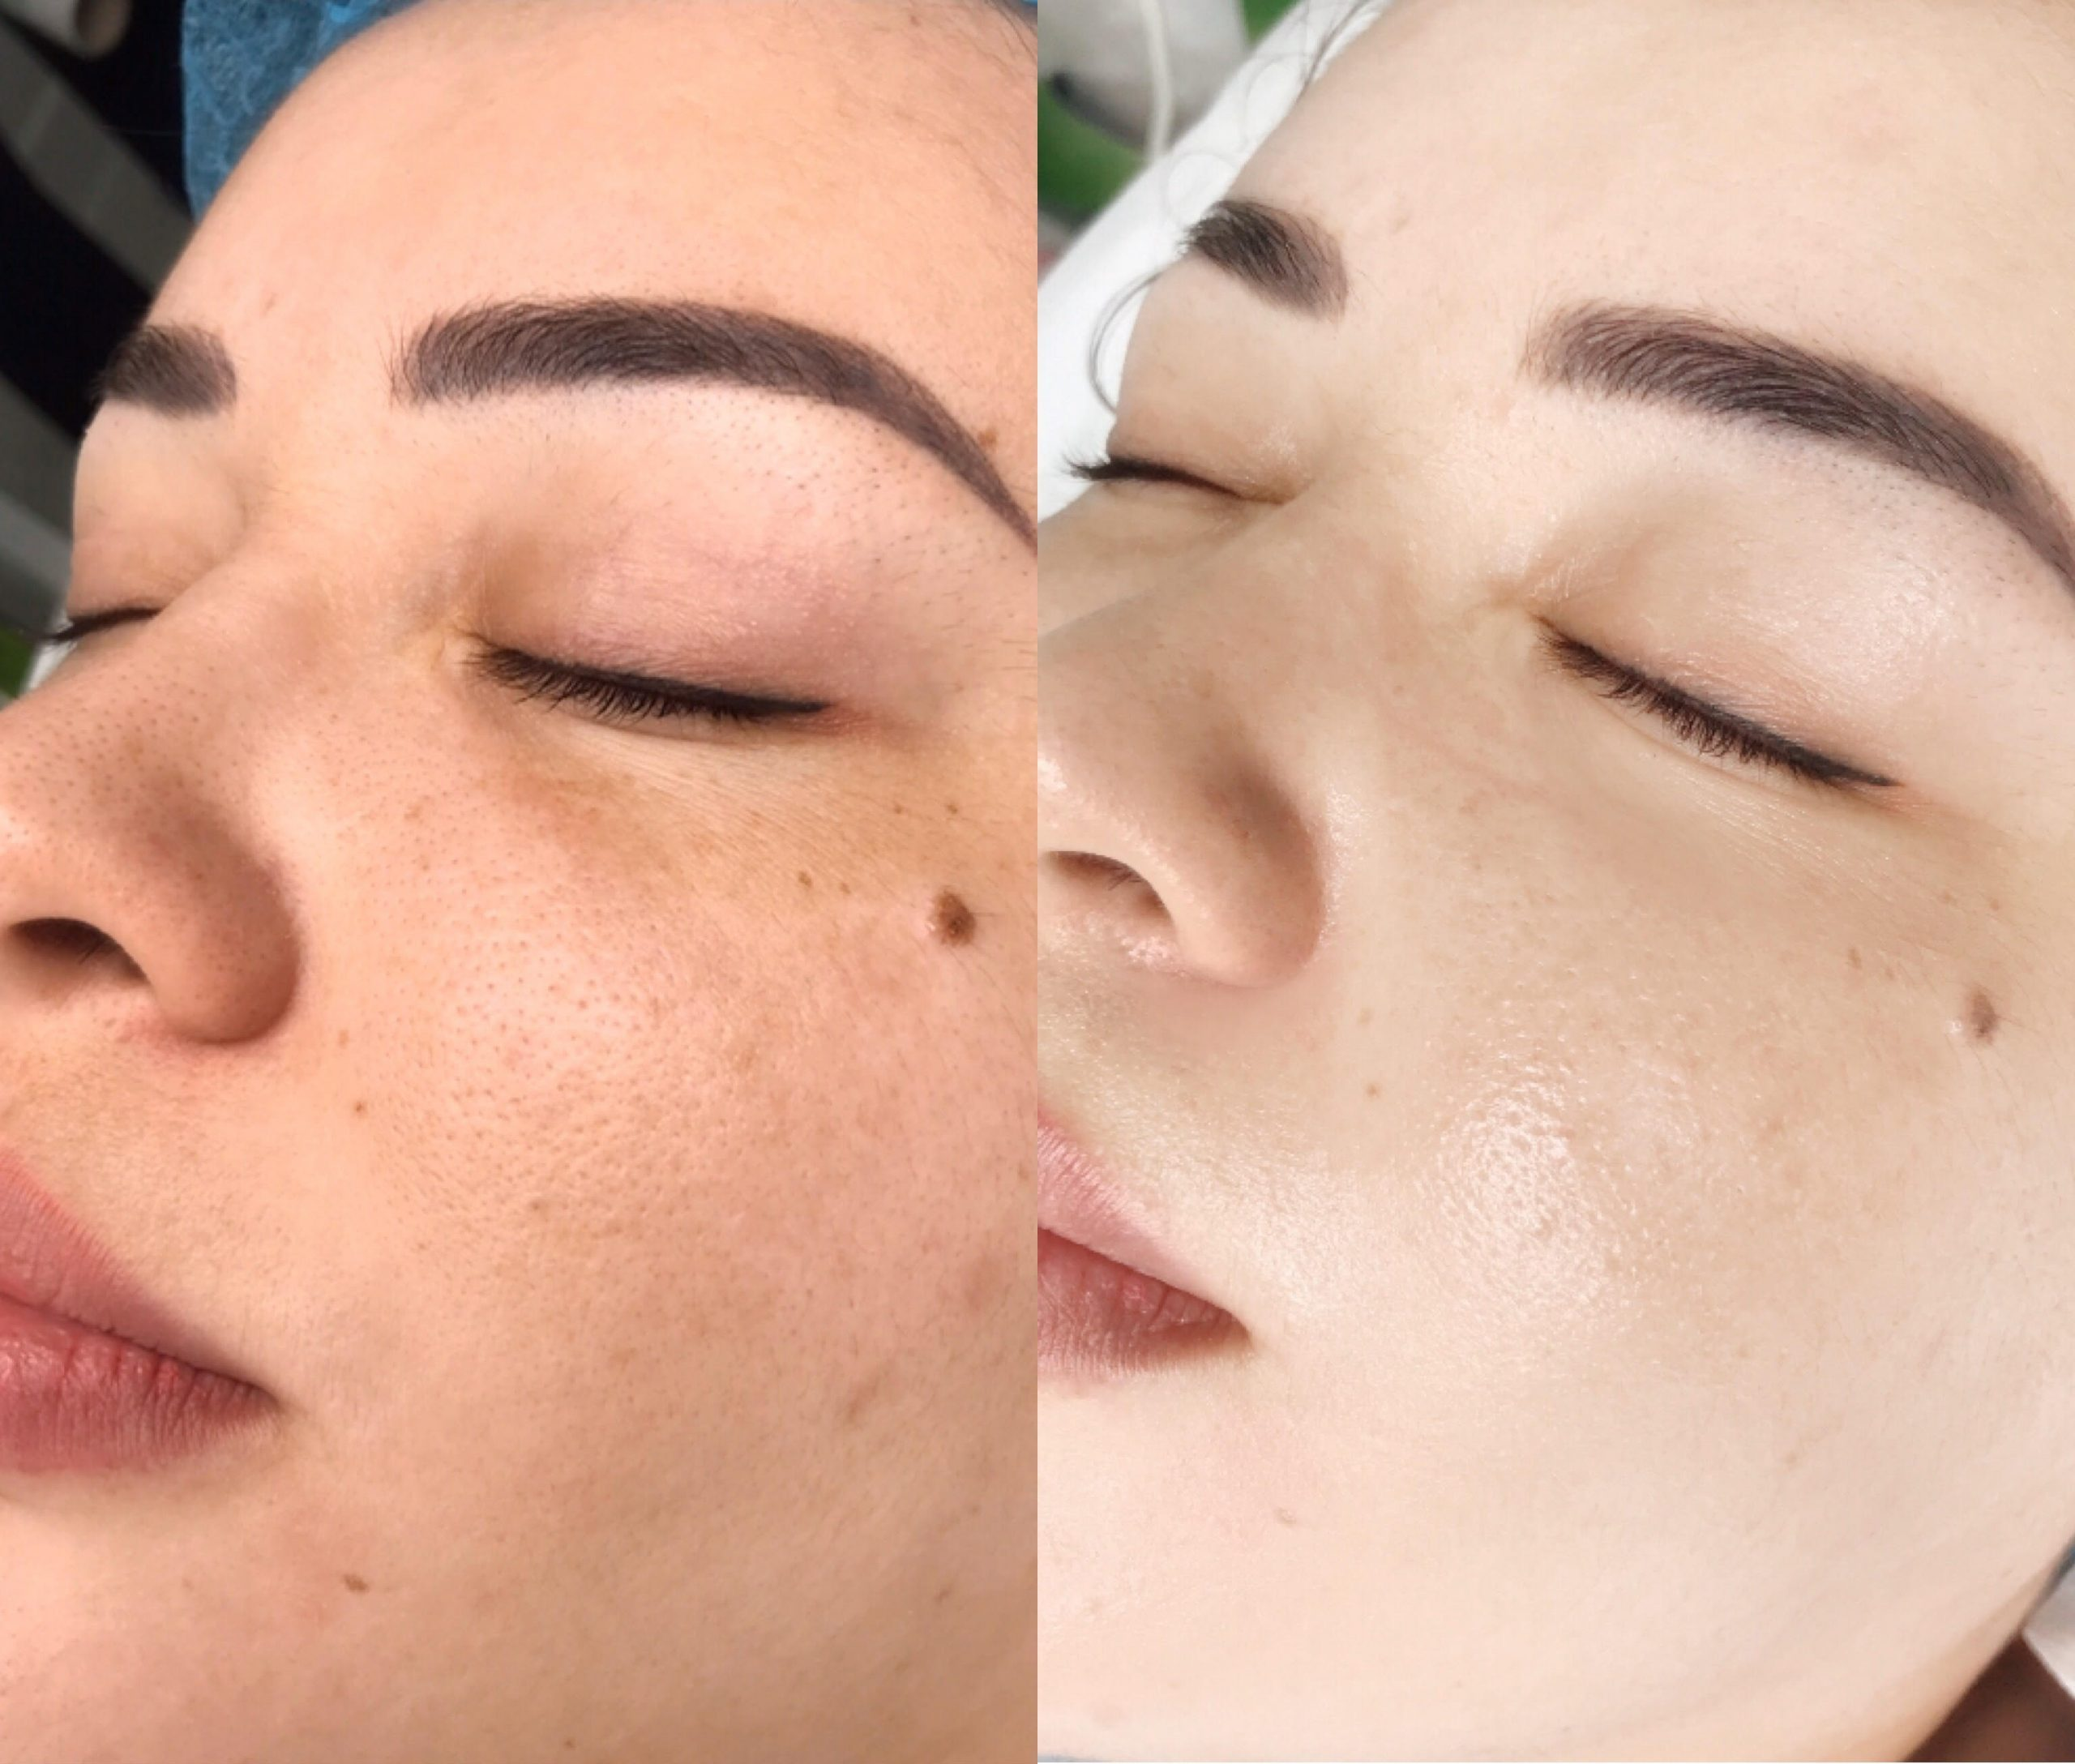 A woman in the process of getting her eyebrows done.